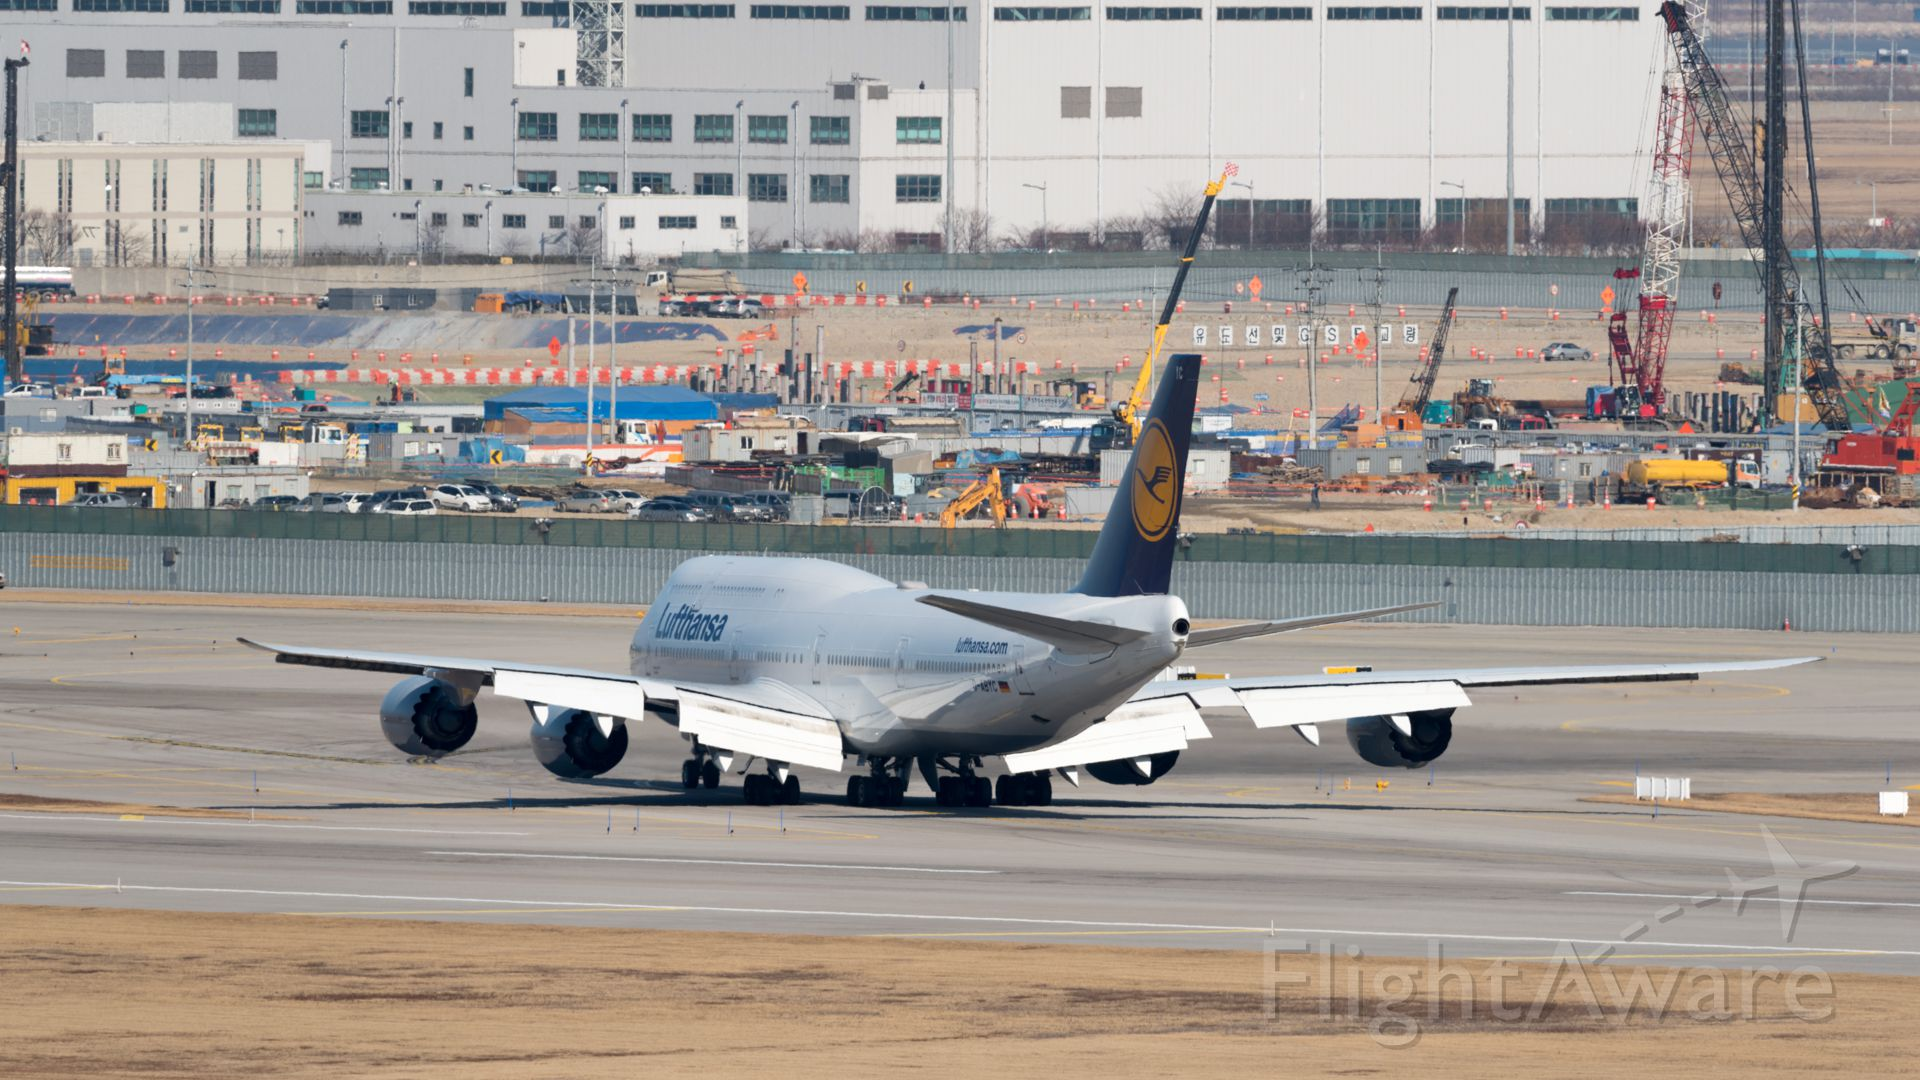 Boeing 747-200 (D-ABYC) - 2015/01/10 12:14:41